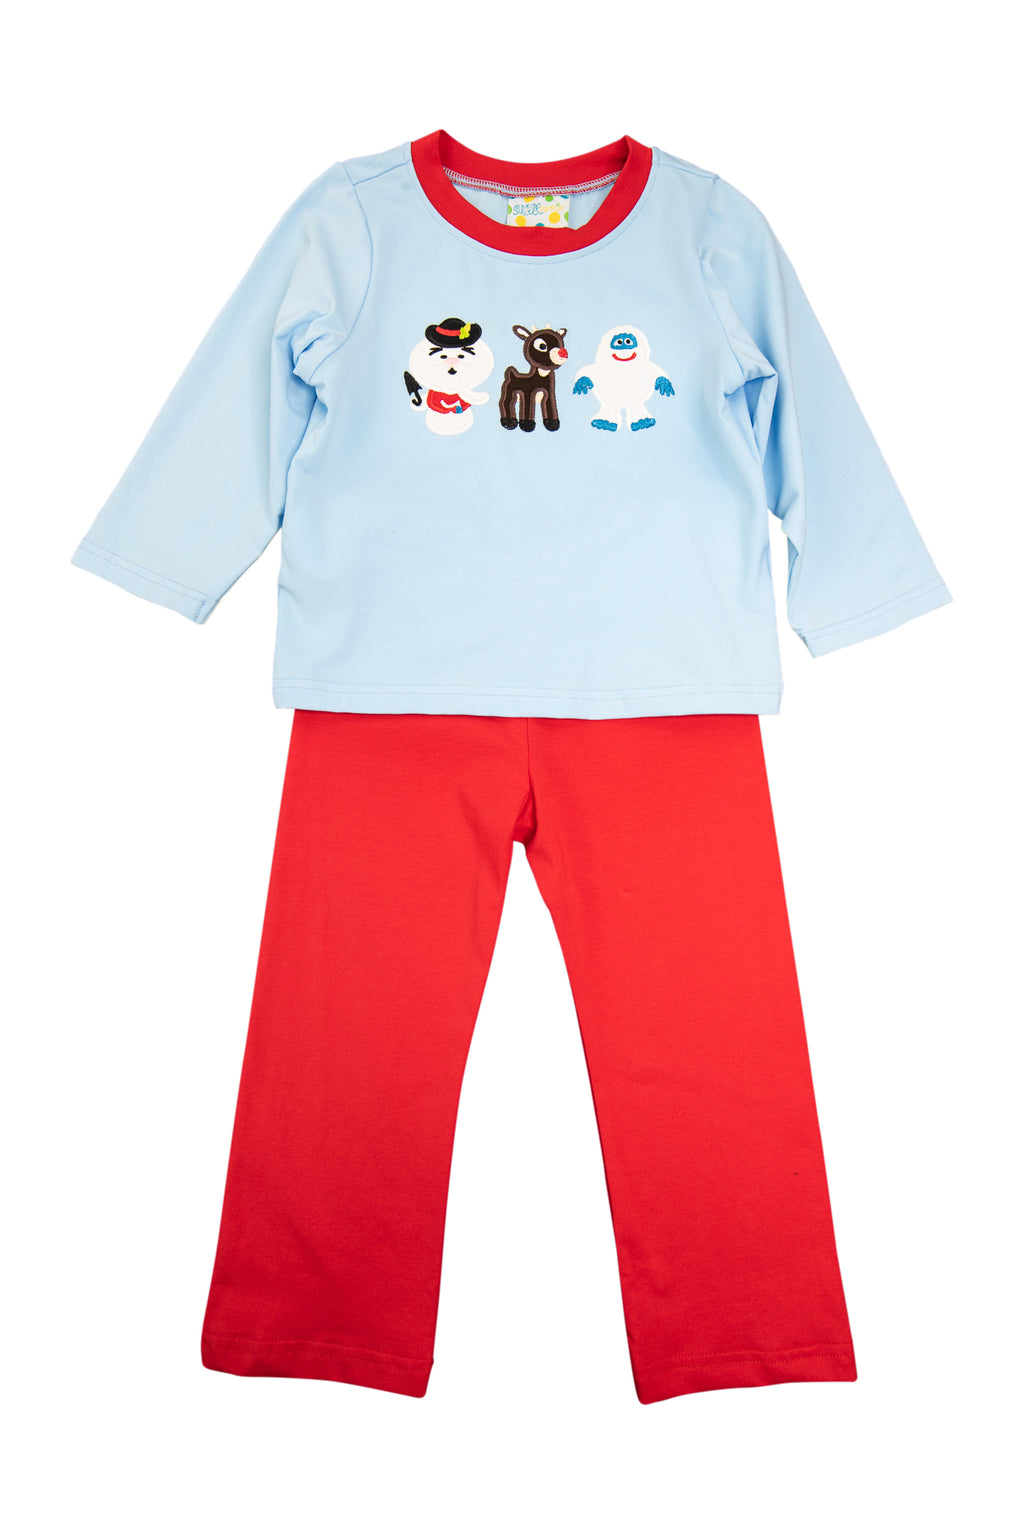 Boys Rudolph & Friends Pants Set